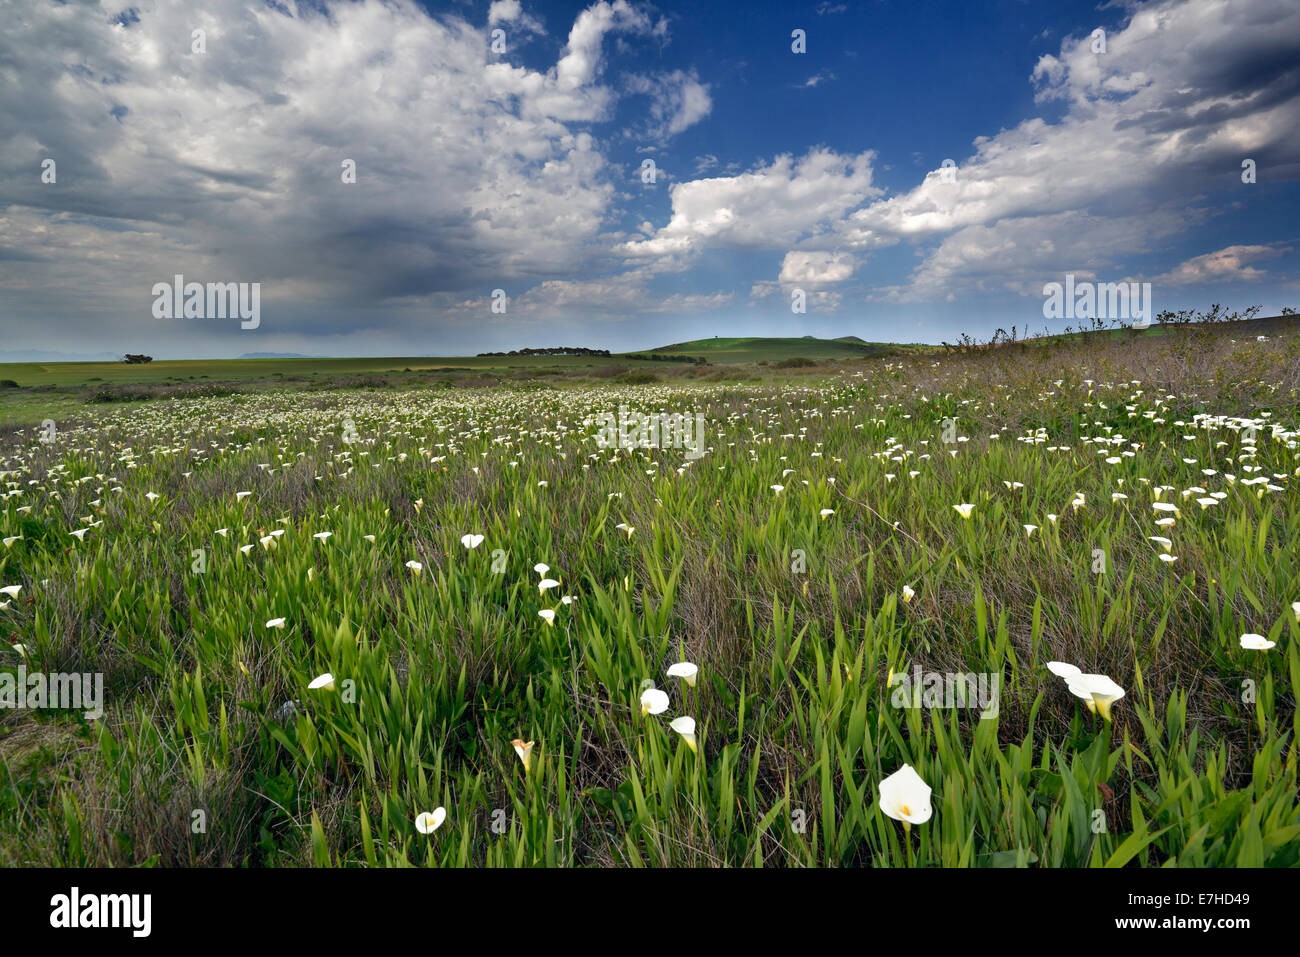 South Africa, West Coast NP, Water Arums or Wild Callas flowering, Calla palustris - Stock Image